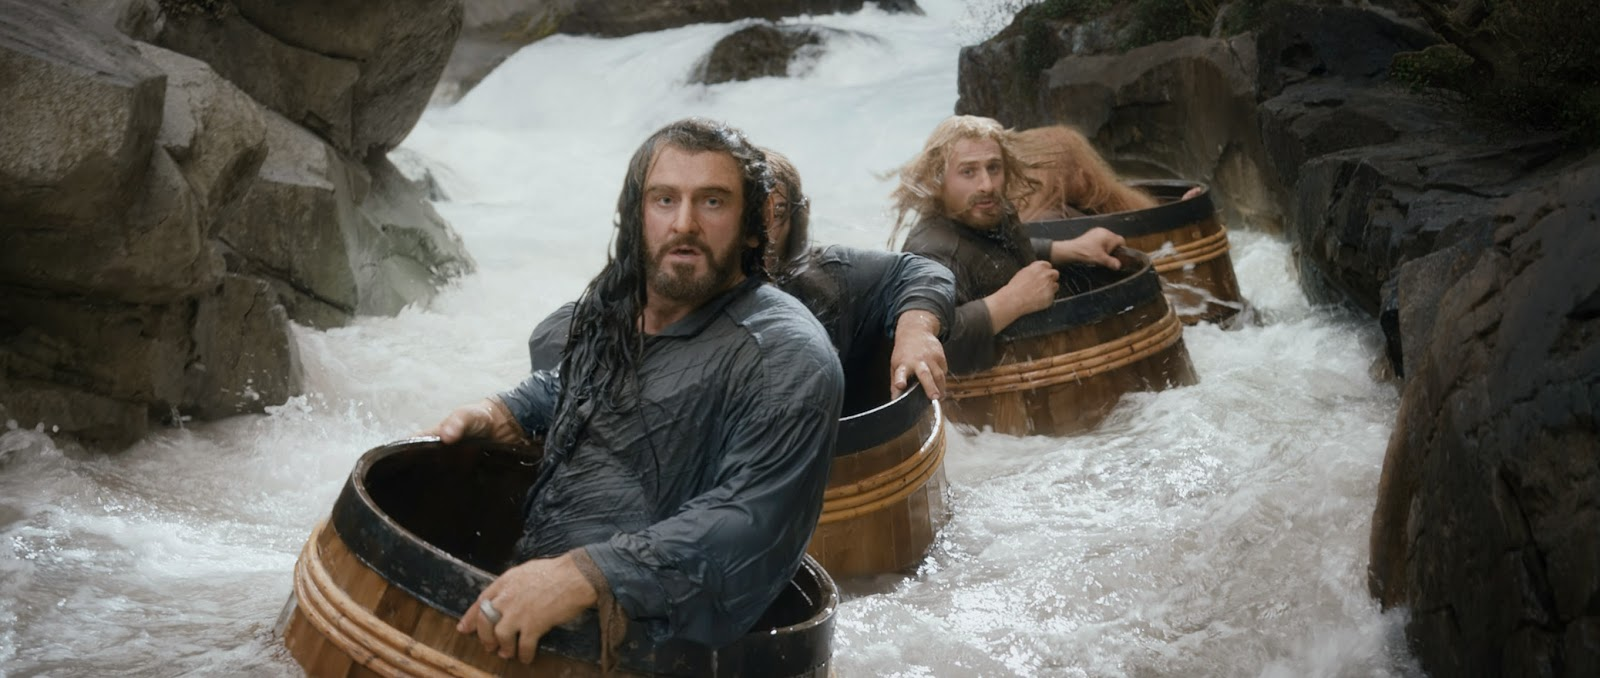 The Hobbit: The Desolation of Smaug barrel escape